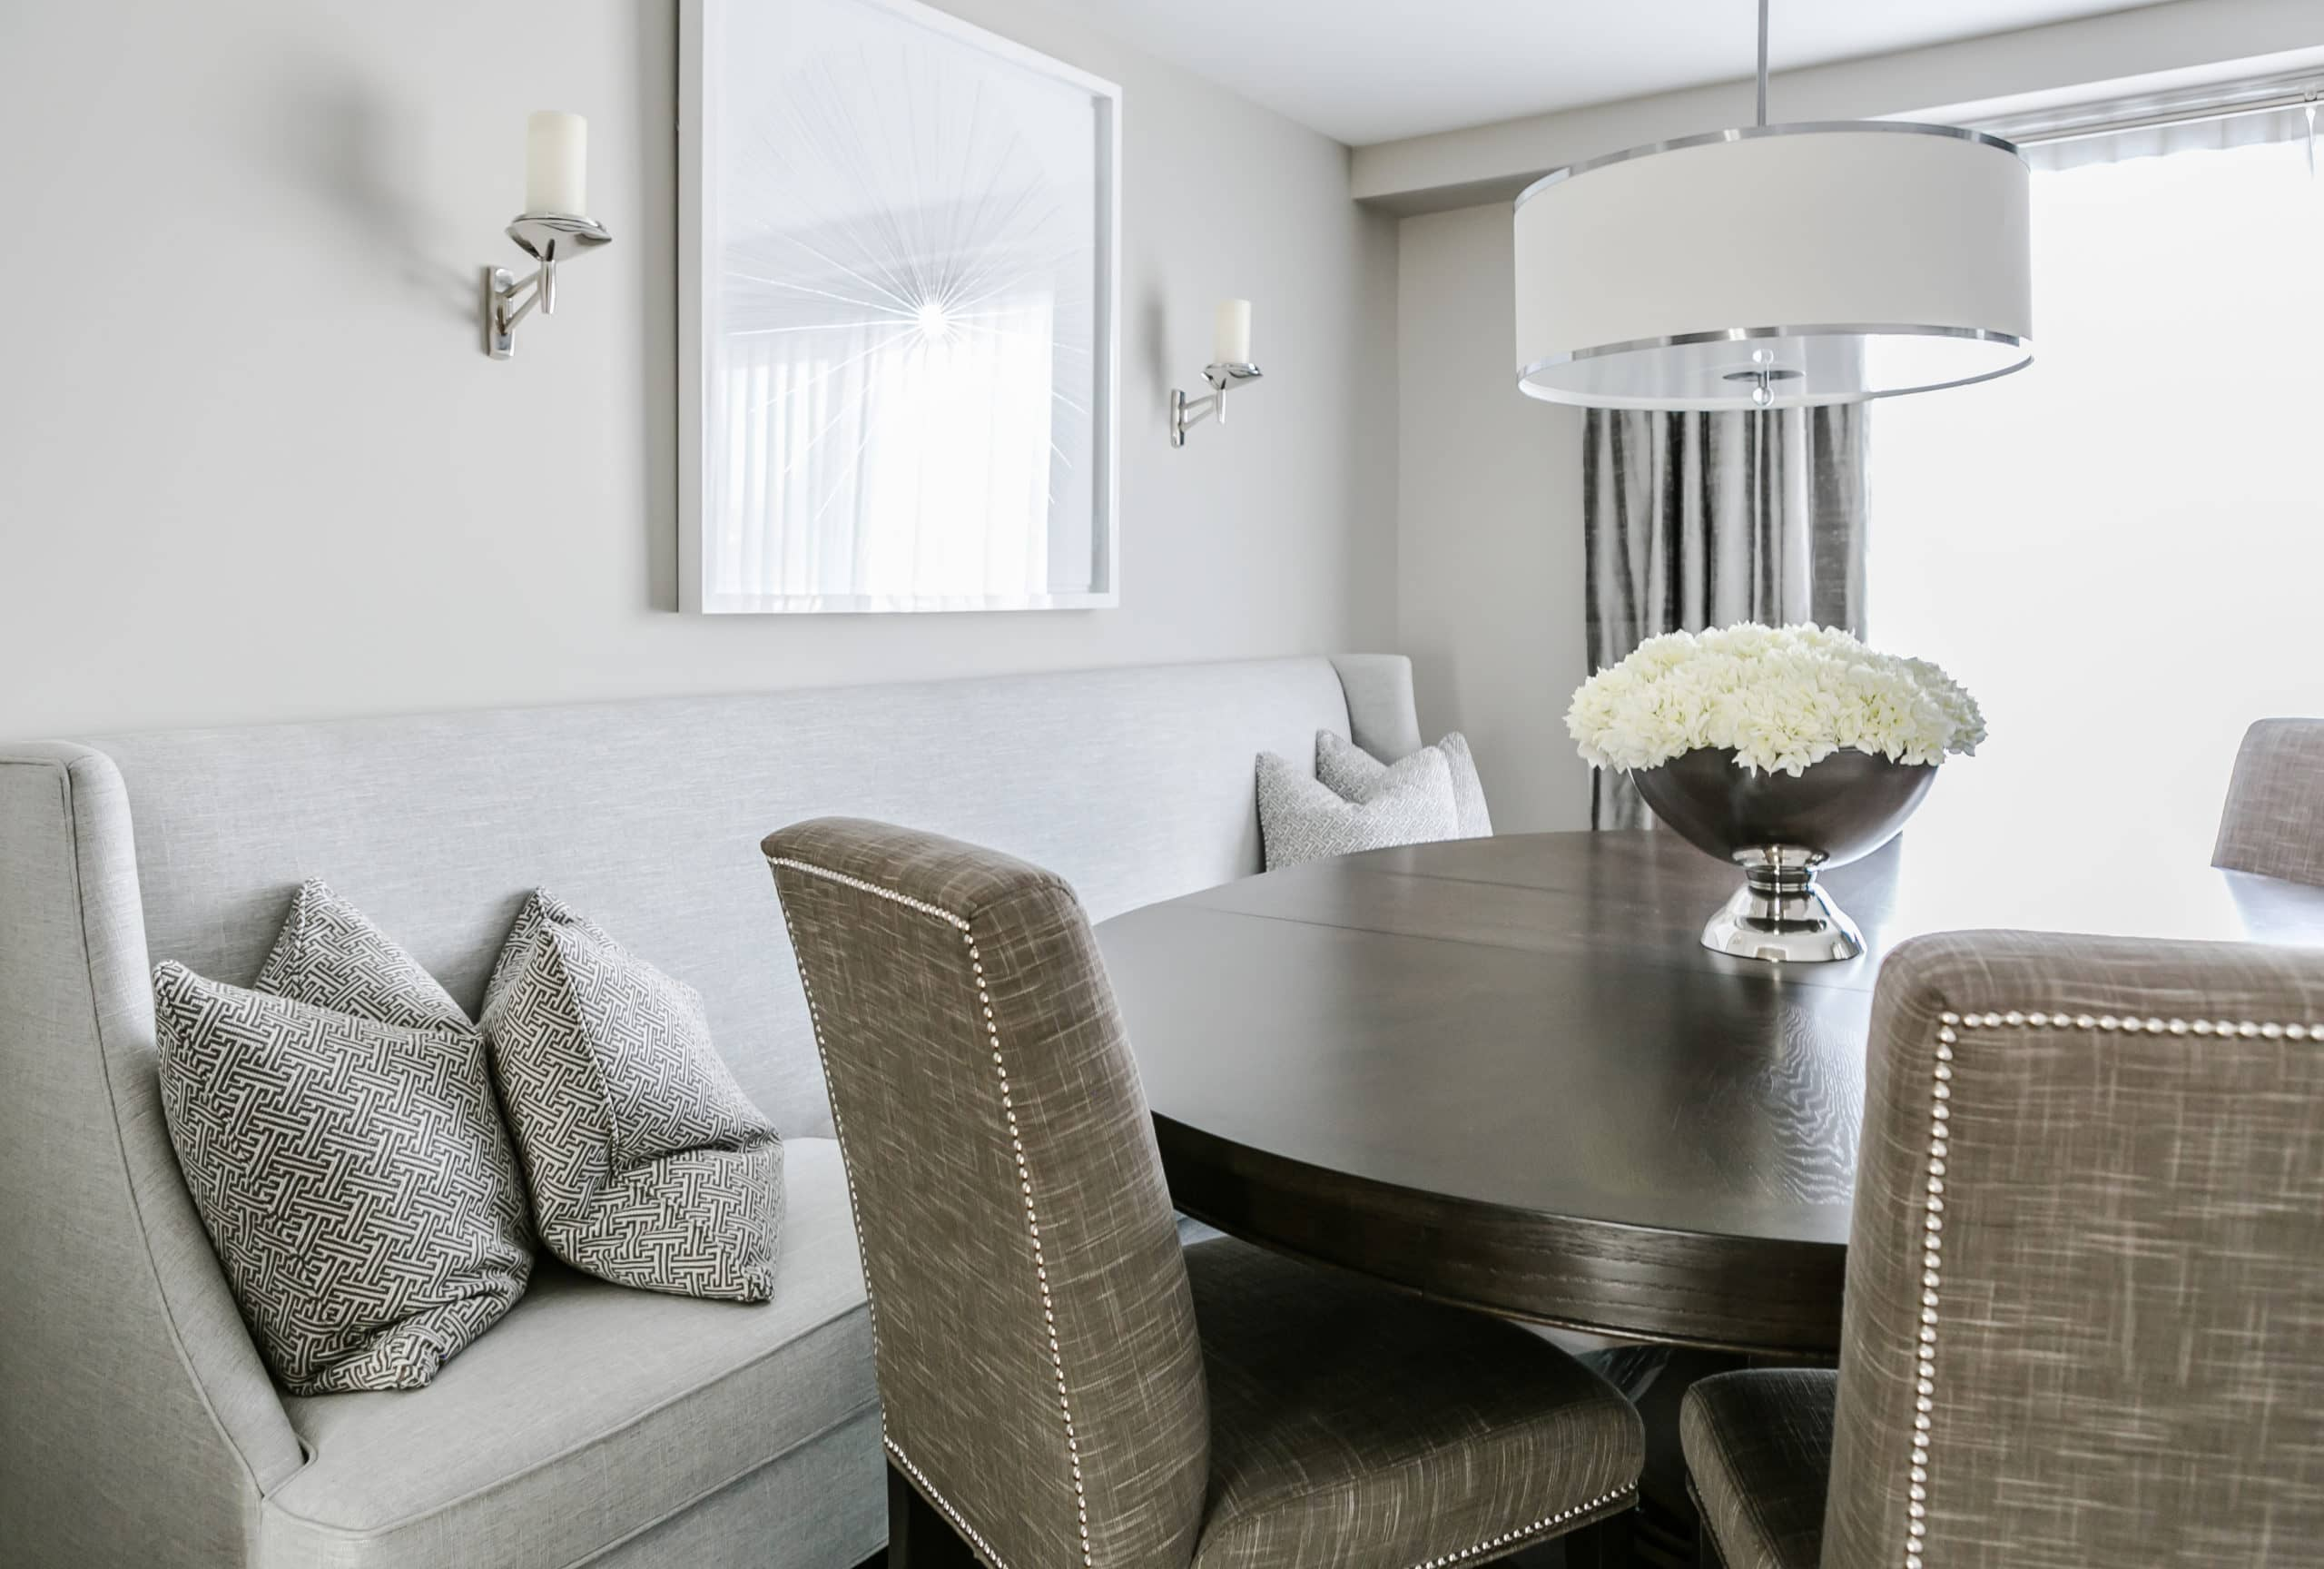 Modern dining room with a gray couch against the wall